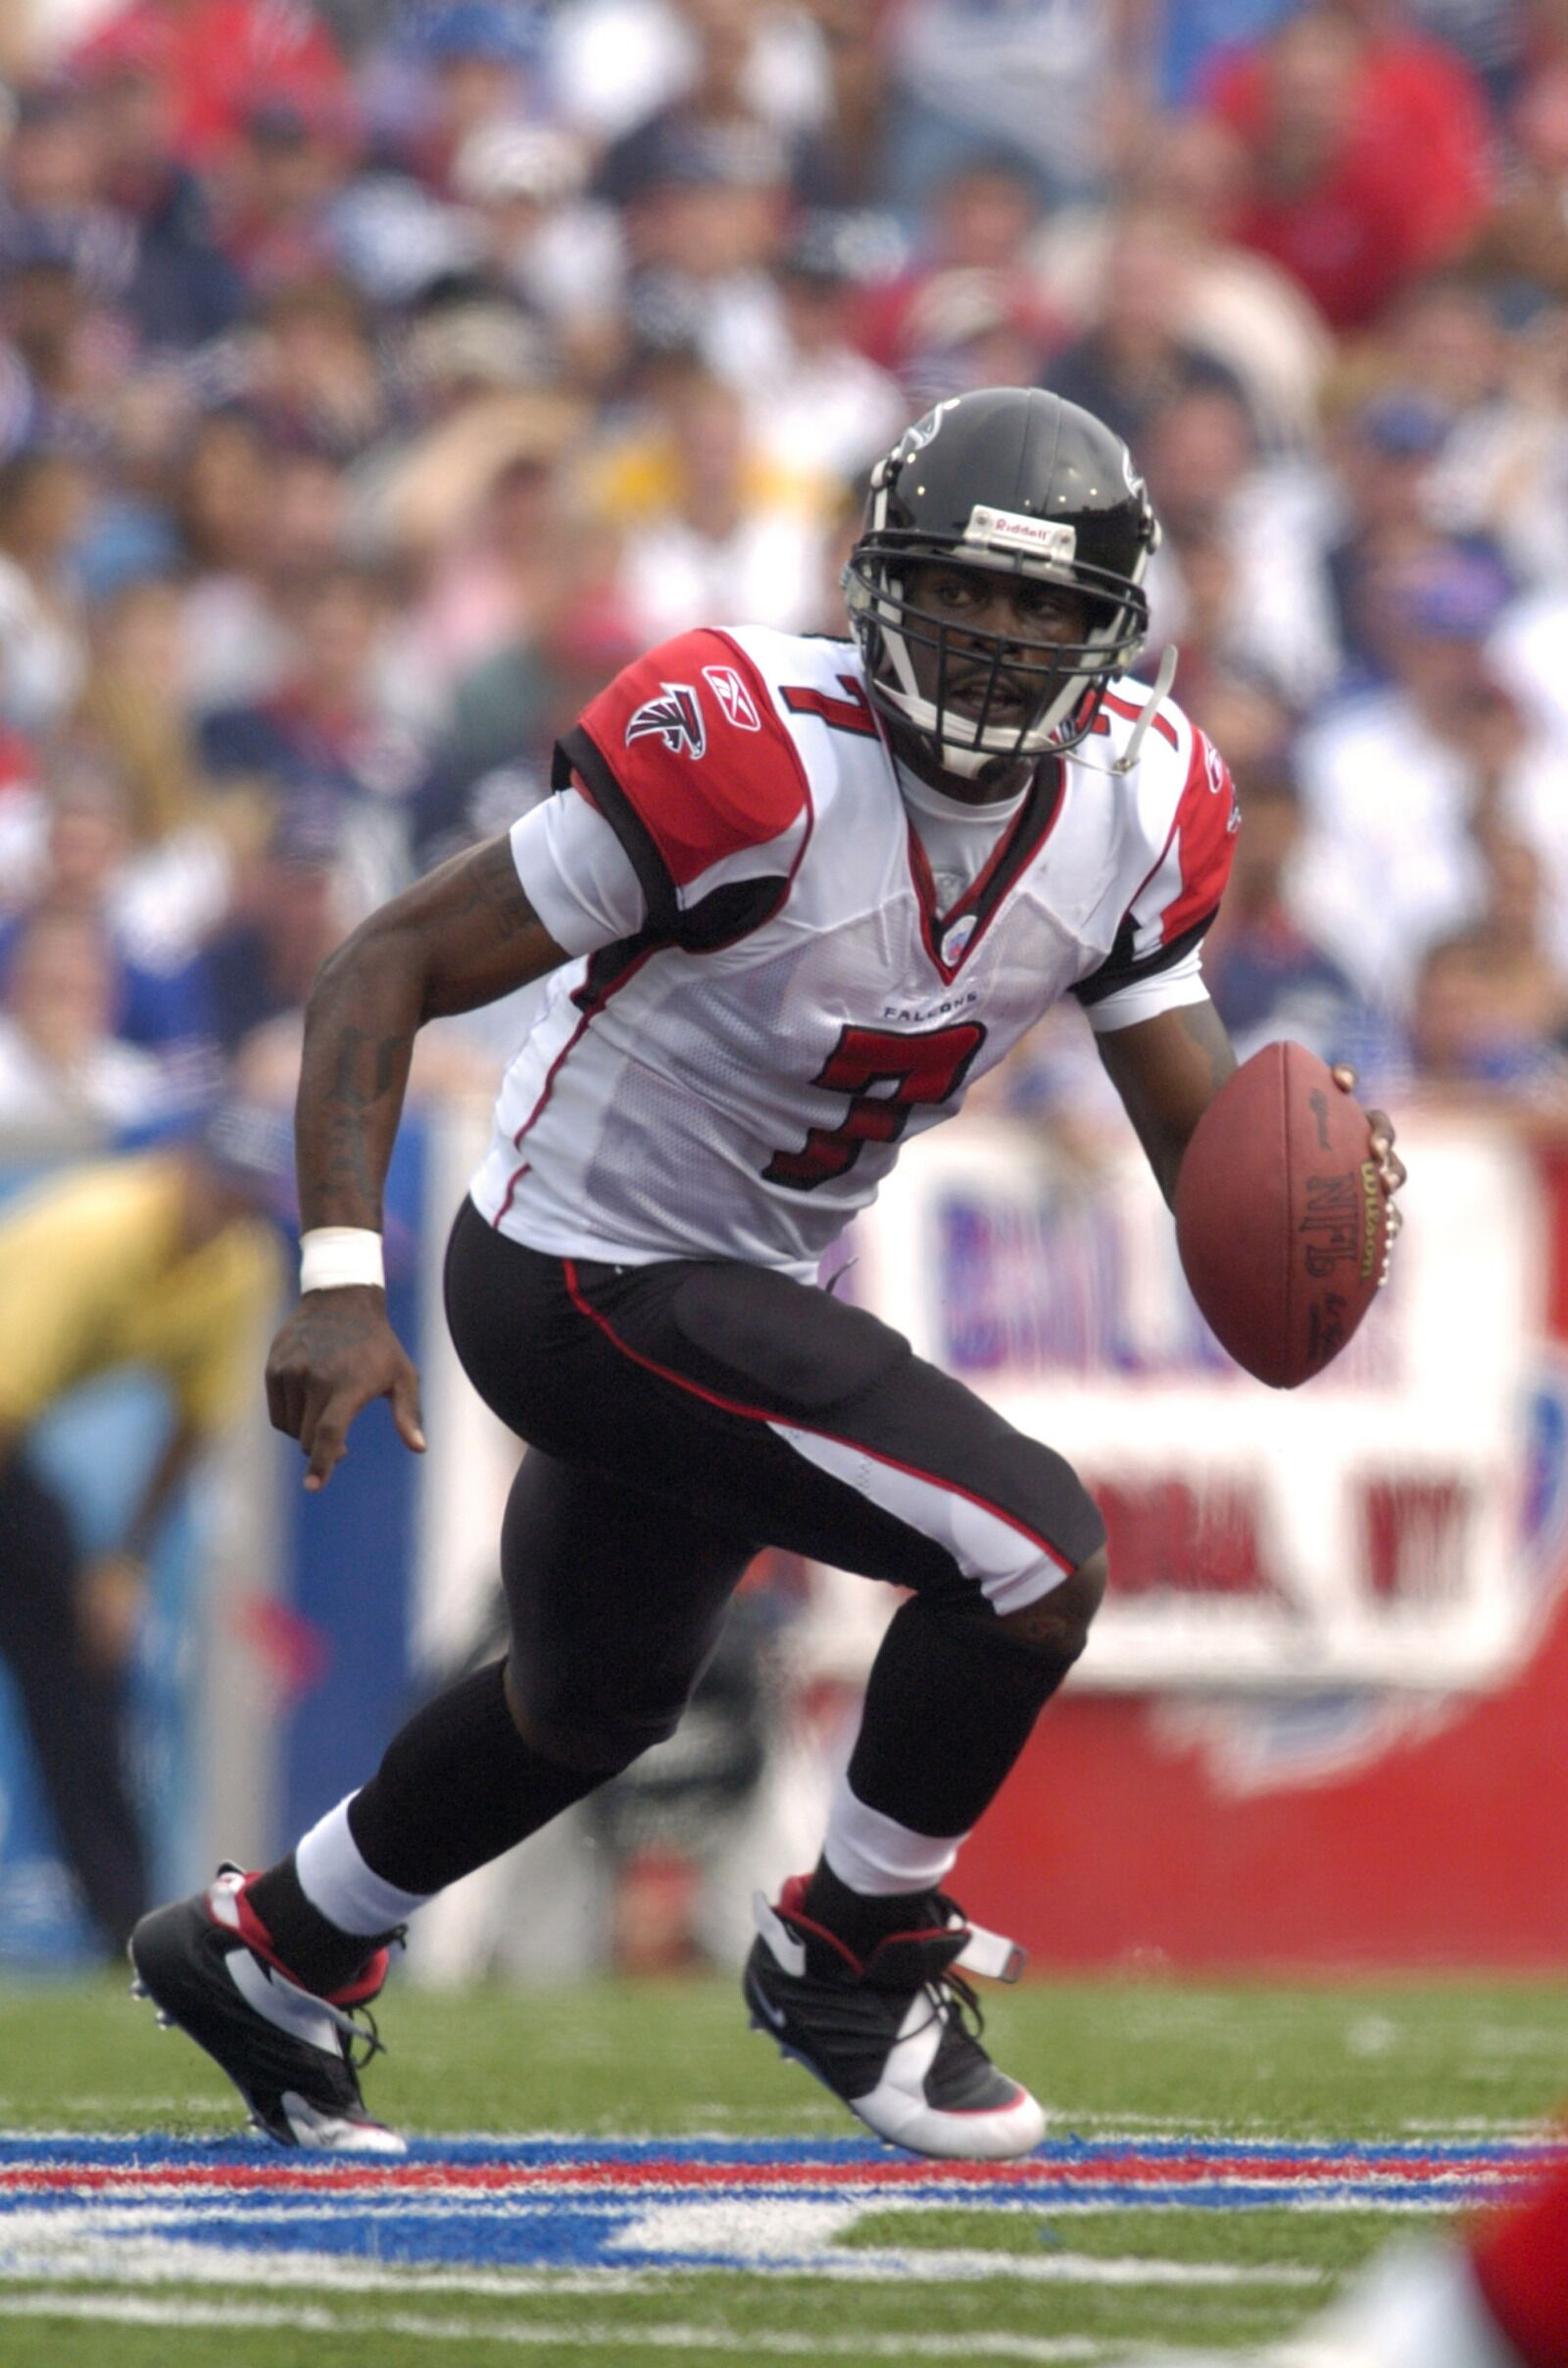 f0c83b2be082 The Michael Vick Experience...One Of A Kind